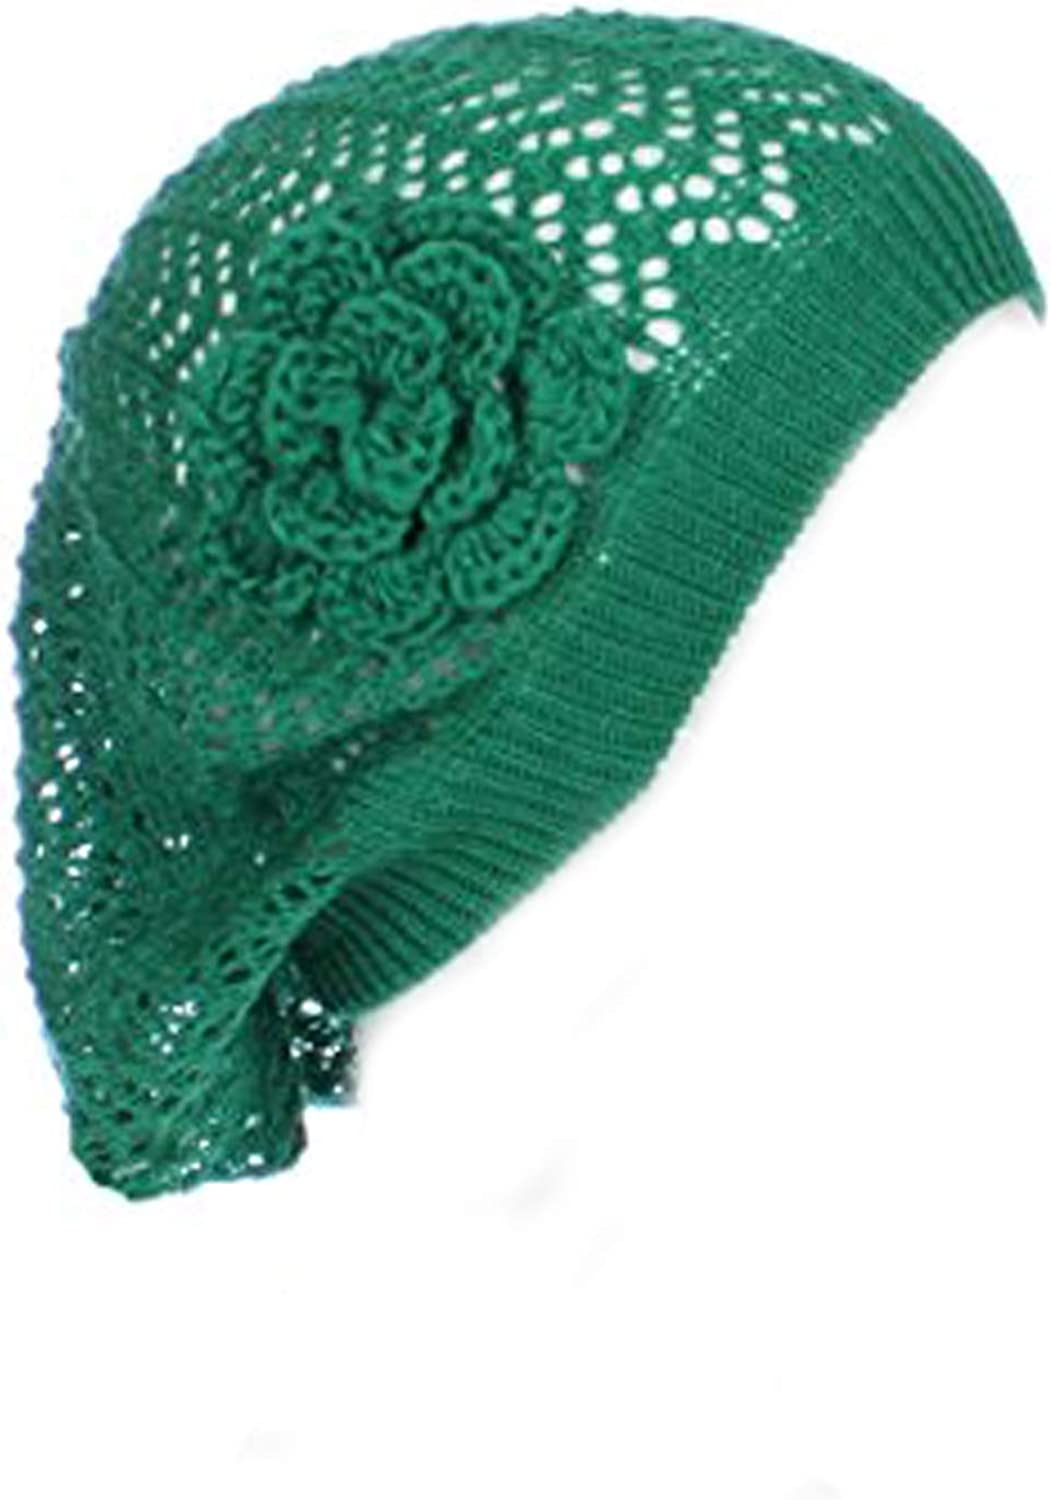 An Crochet Hat Flower...